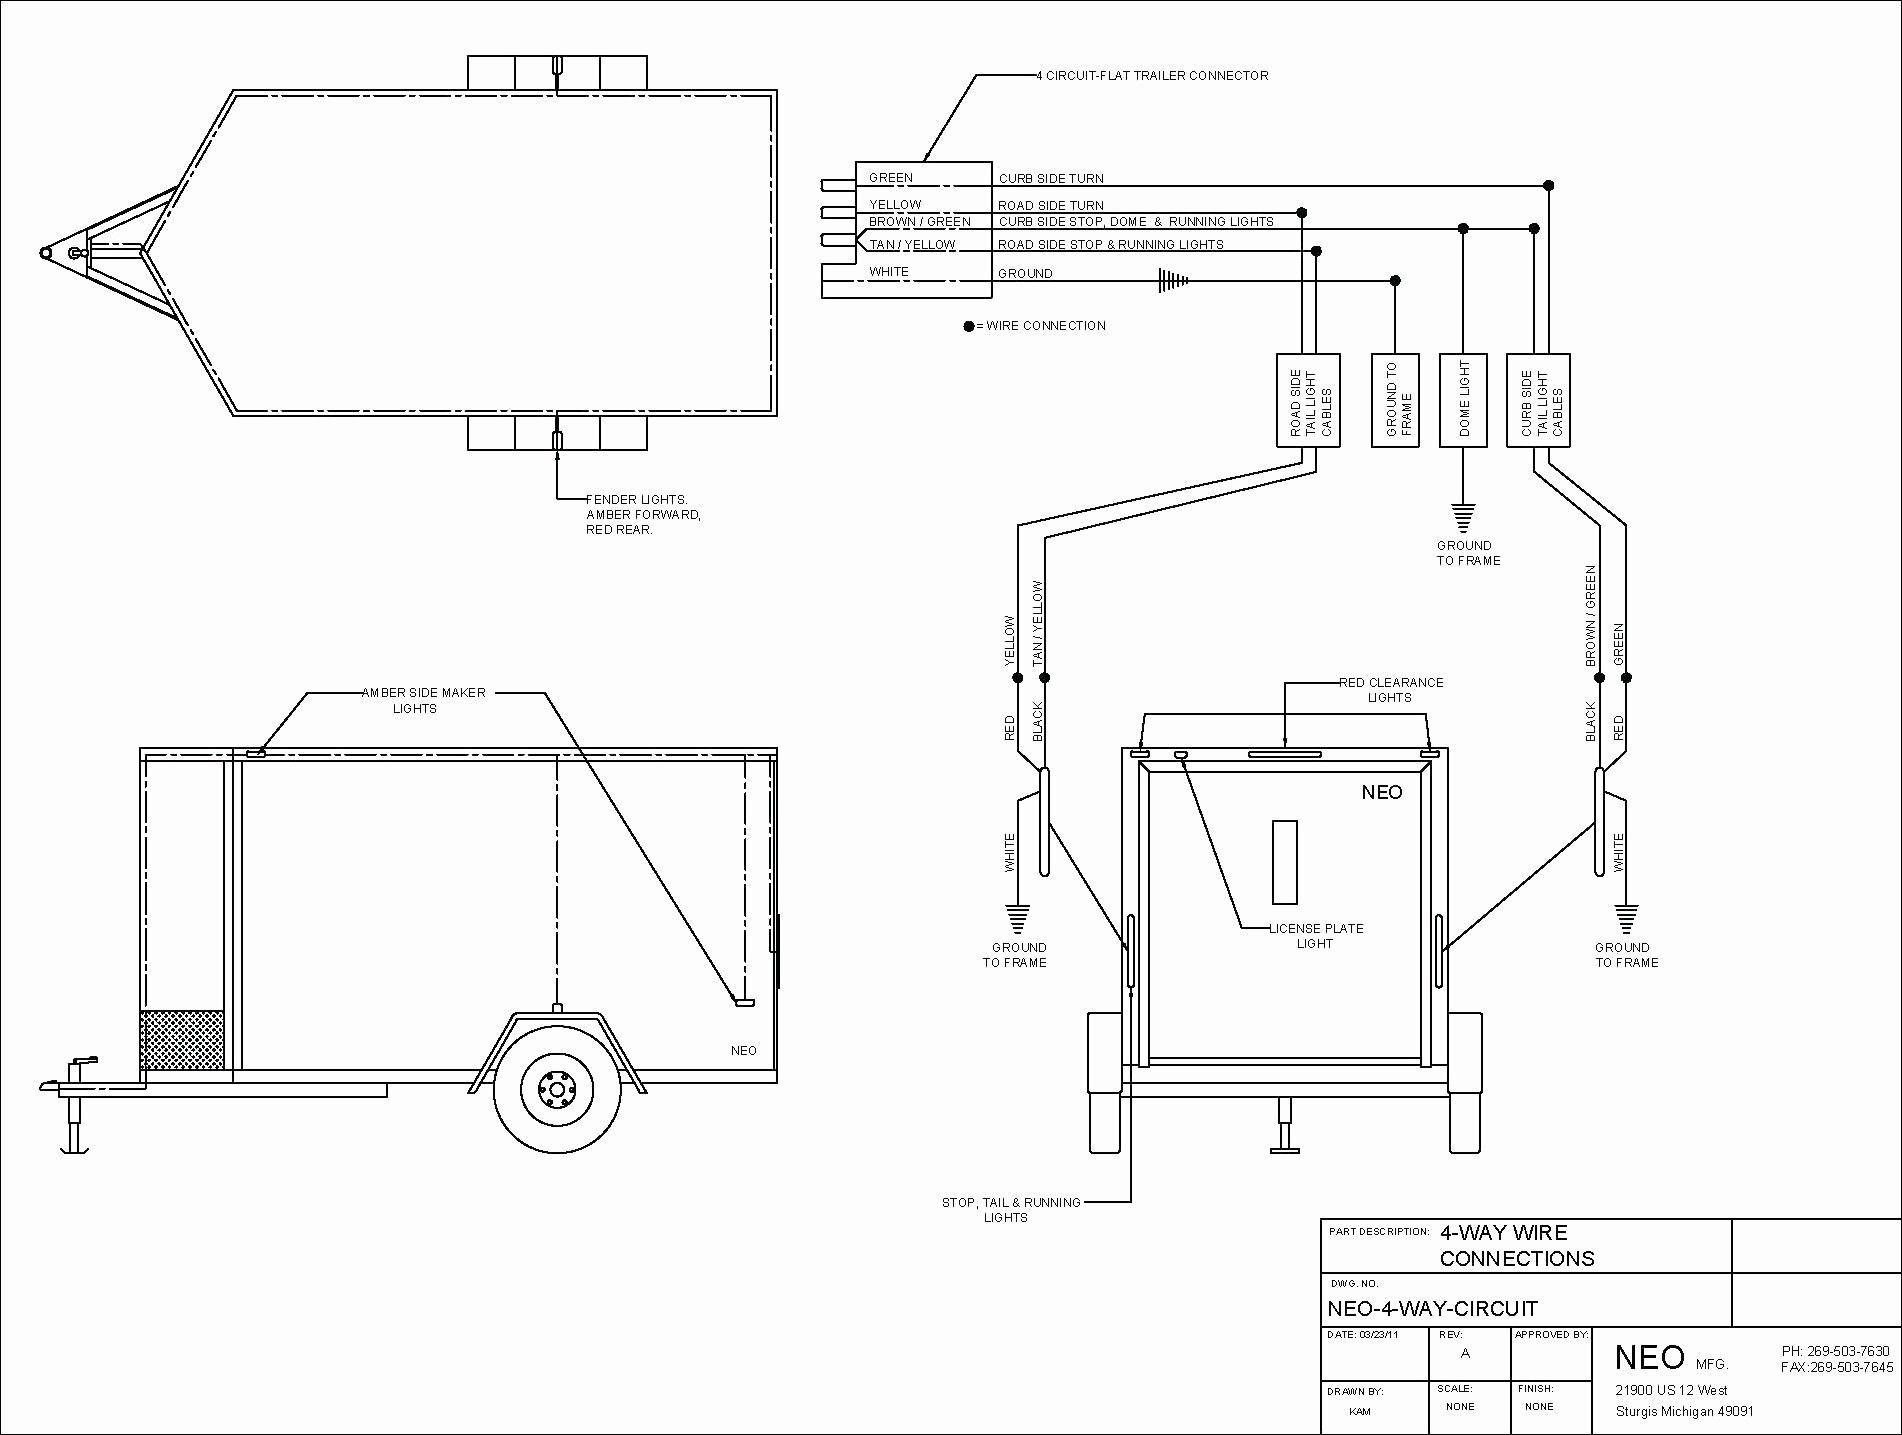 Unique Wiring Diagram for Car Trailer with Electric Brakes